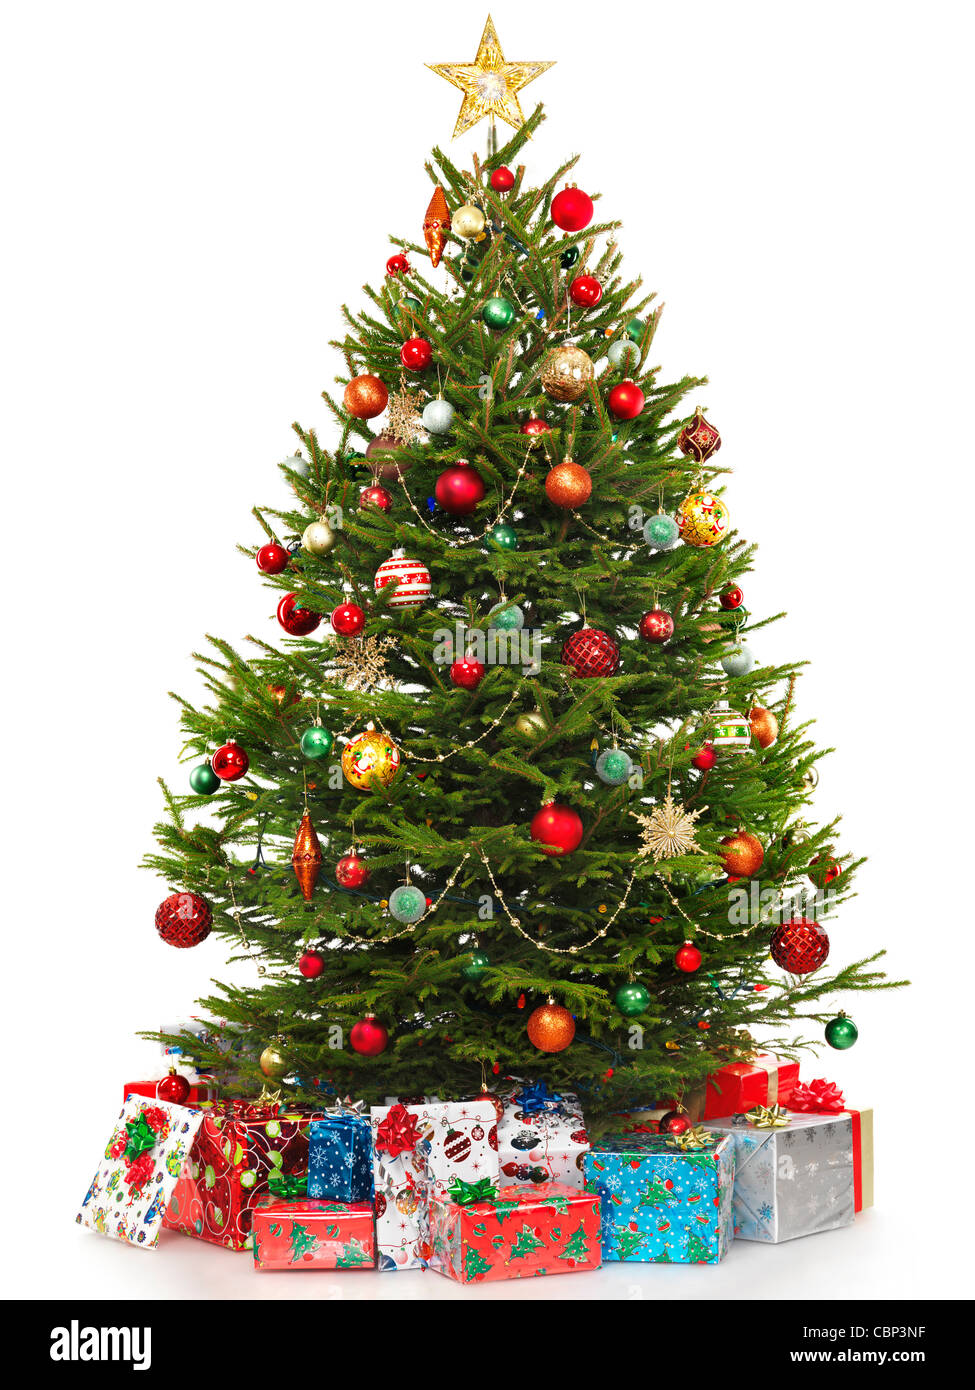 Beautiful decorated Christmas tree with colorful wrapped gifts under it. Isolated on white background. - Stock Image